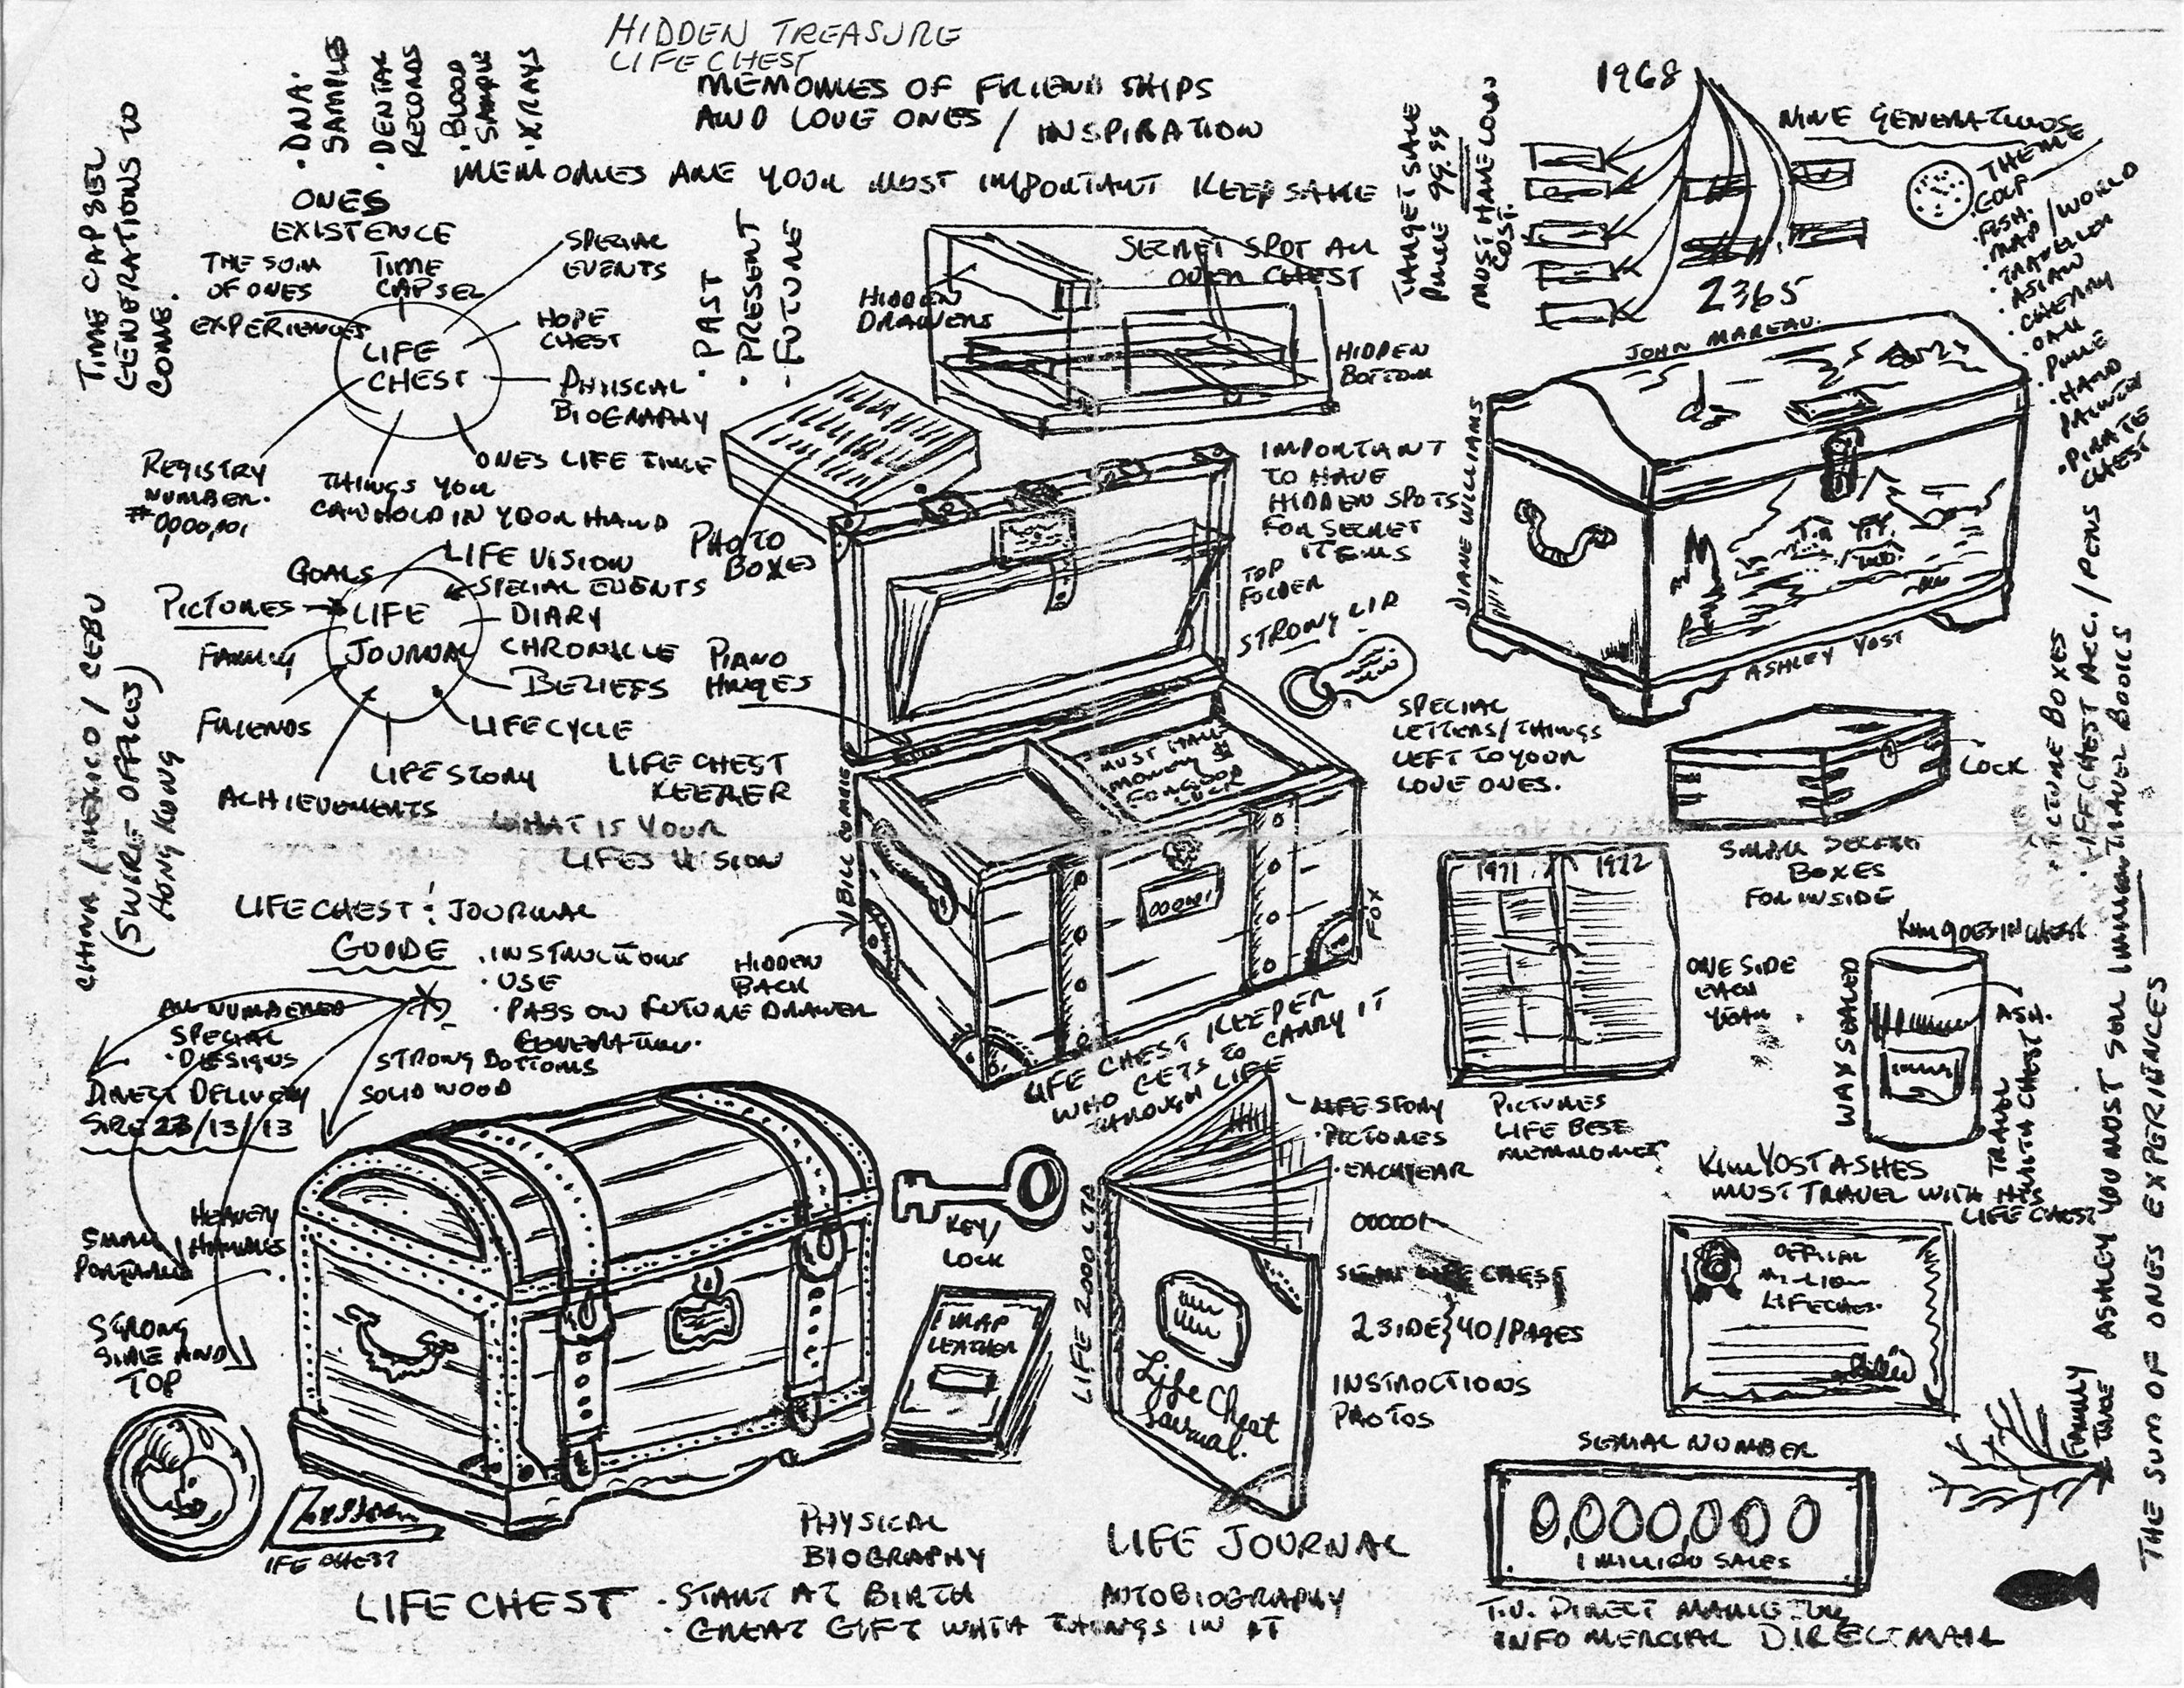 The Life Chest Mind Map